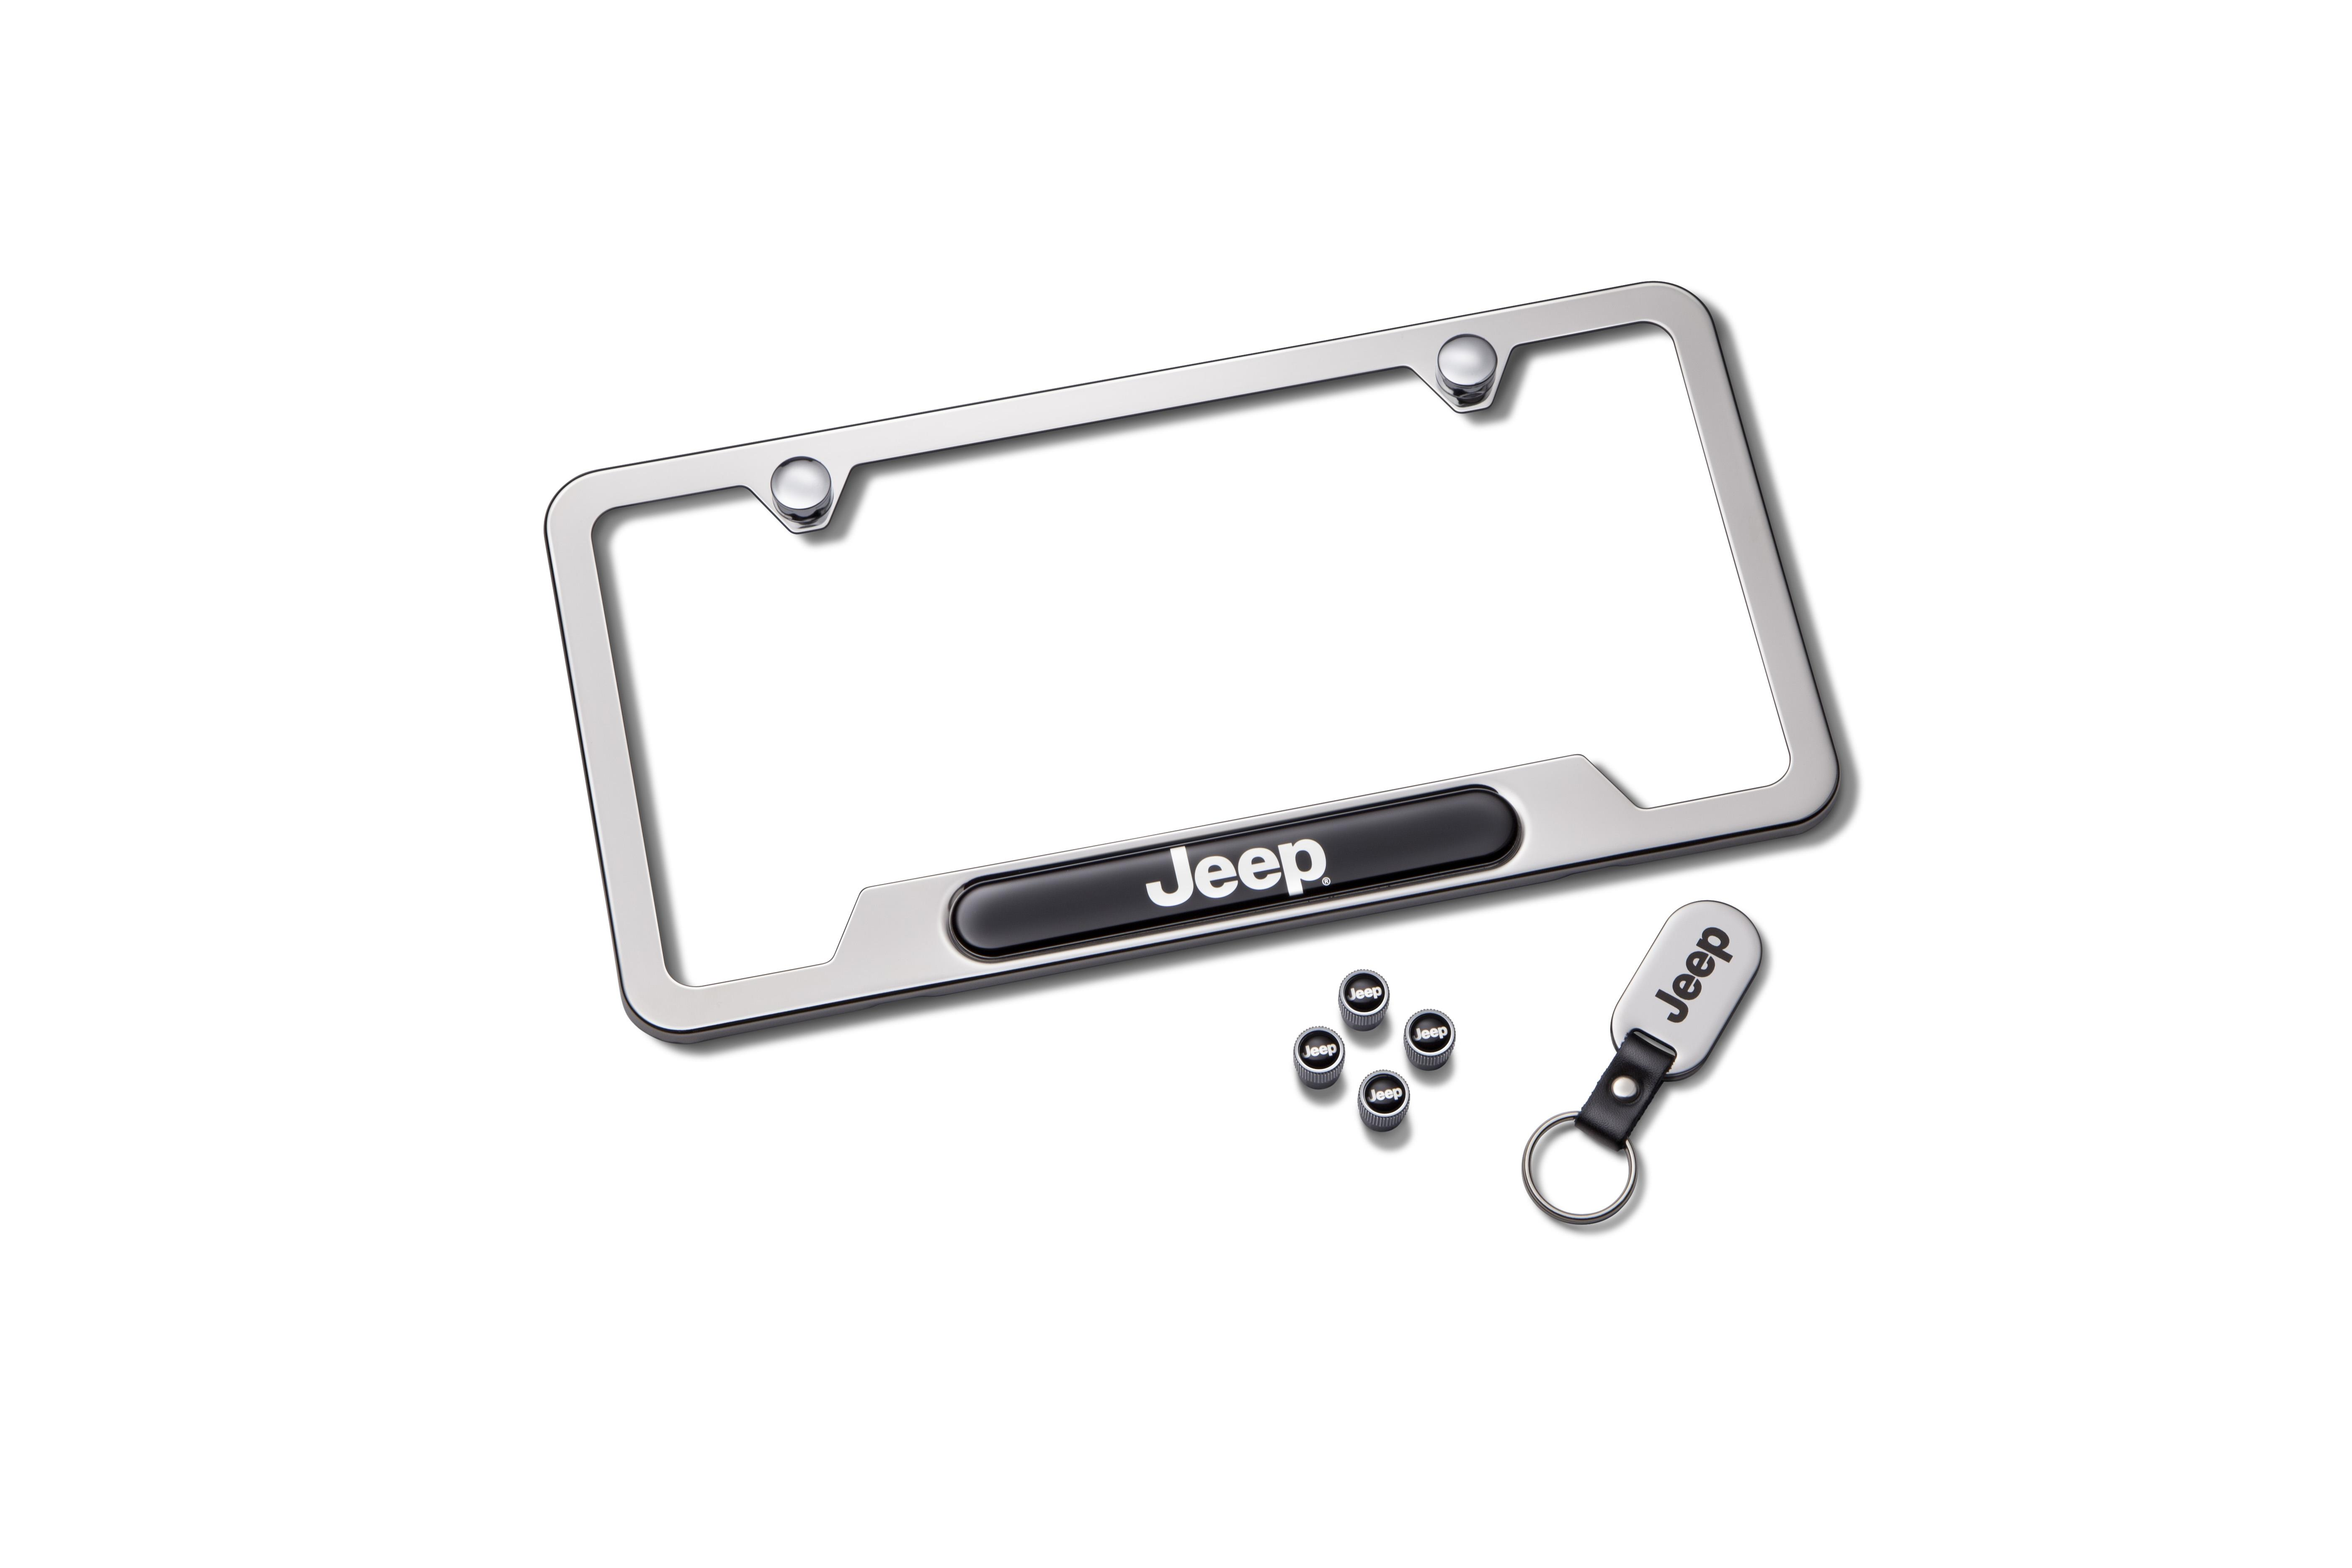 Jeep Renegade License Plate T Set Includes One